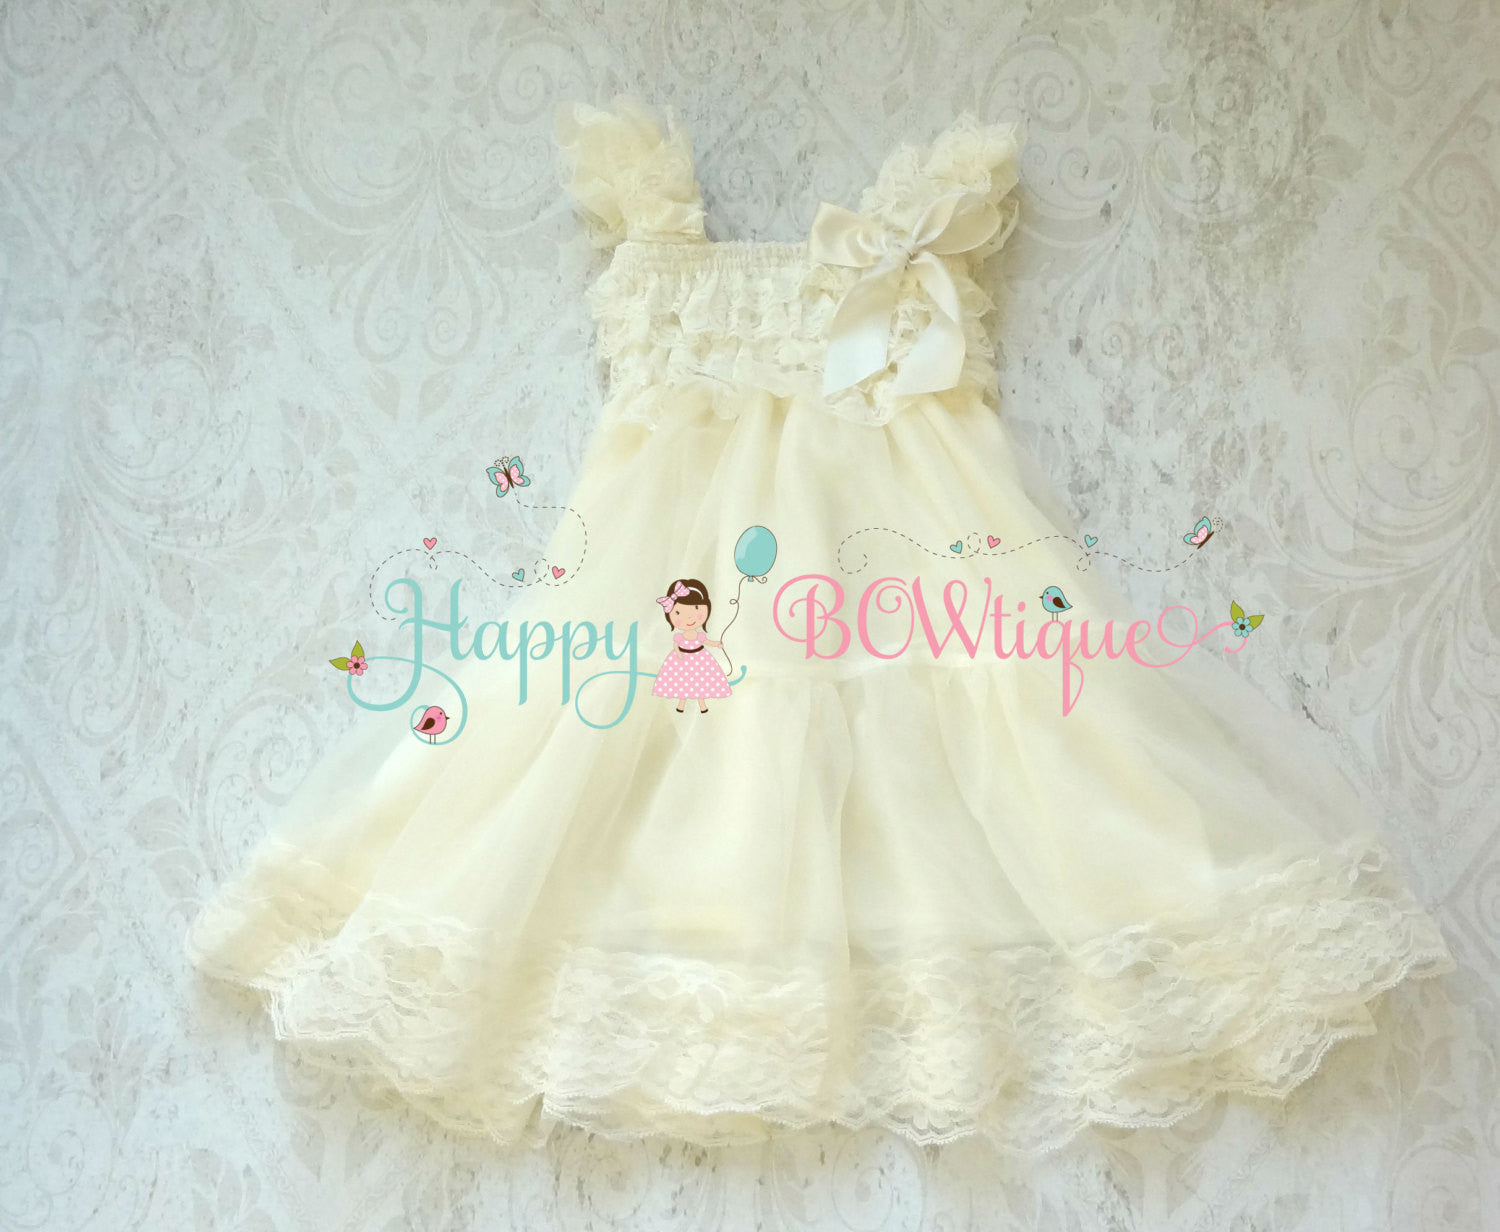 Flower girl dress/ Girl's Ivory Rose Chiffon Dress Set - Happy BOWtique - children's clothing, Baby Girl clothing